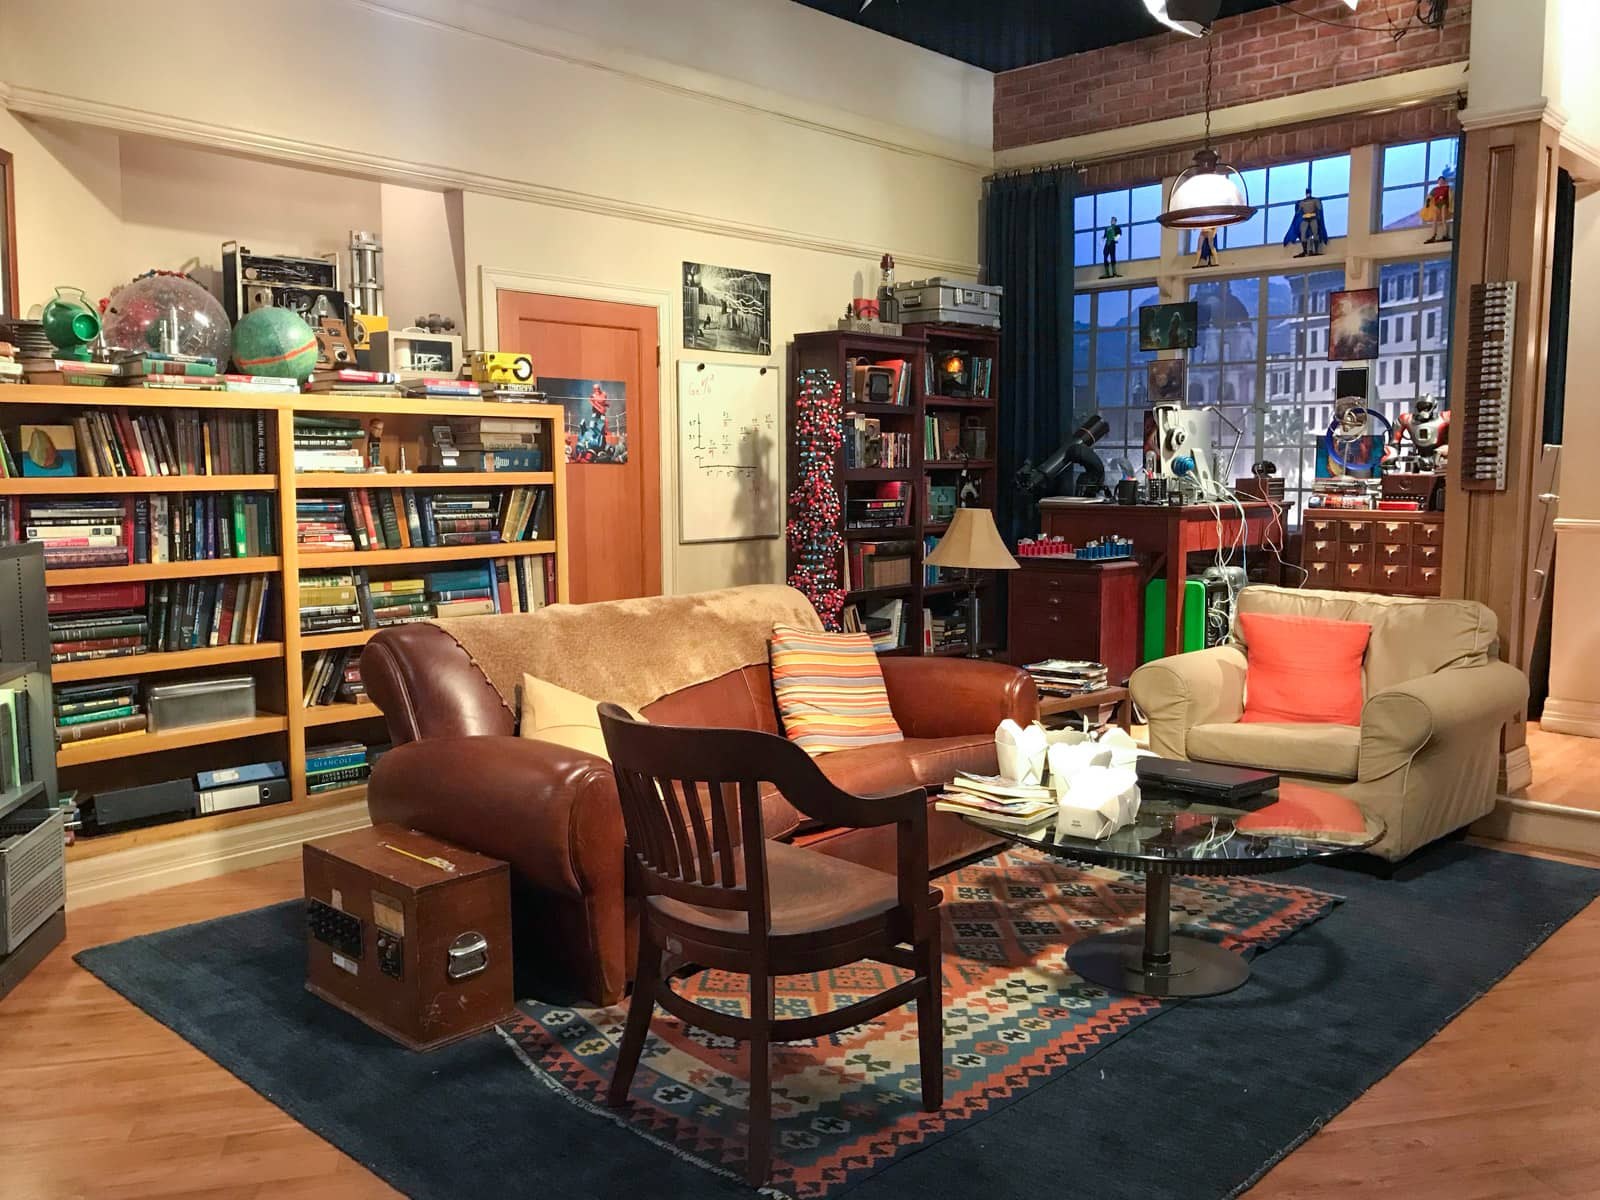 A television stage set up to look like a small apartment, with bookshelves full of books and a window looking out to the city.